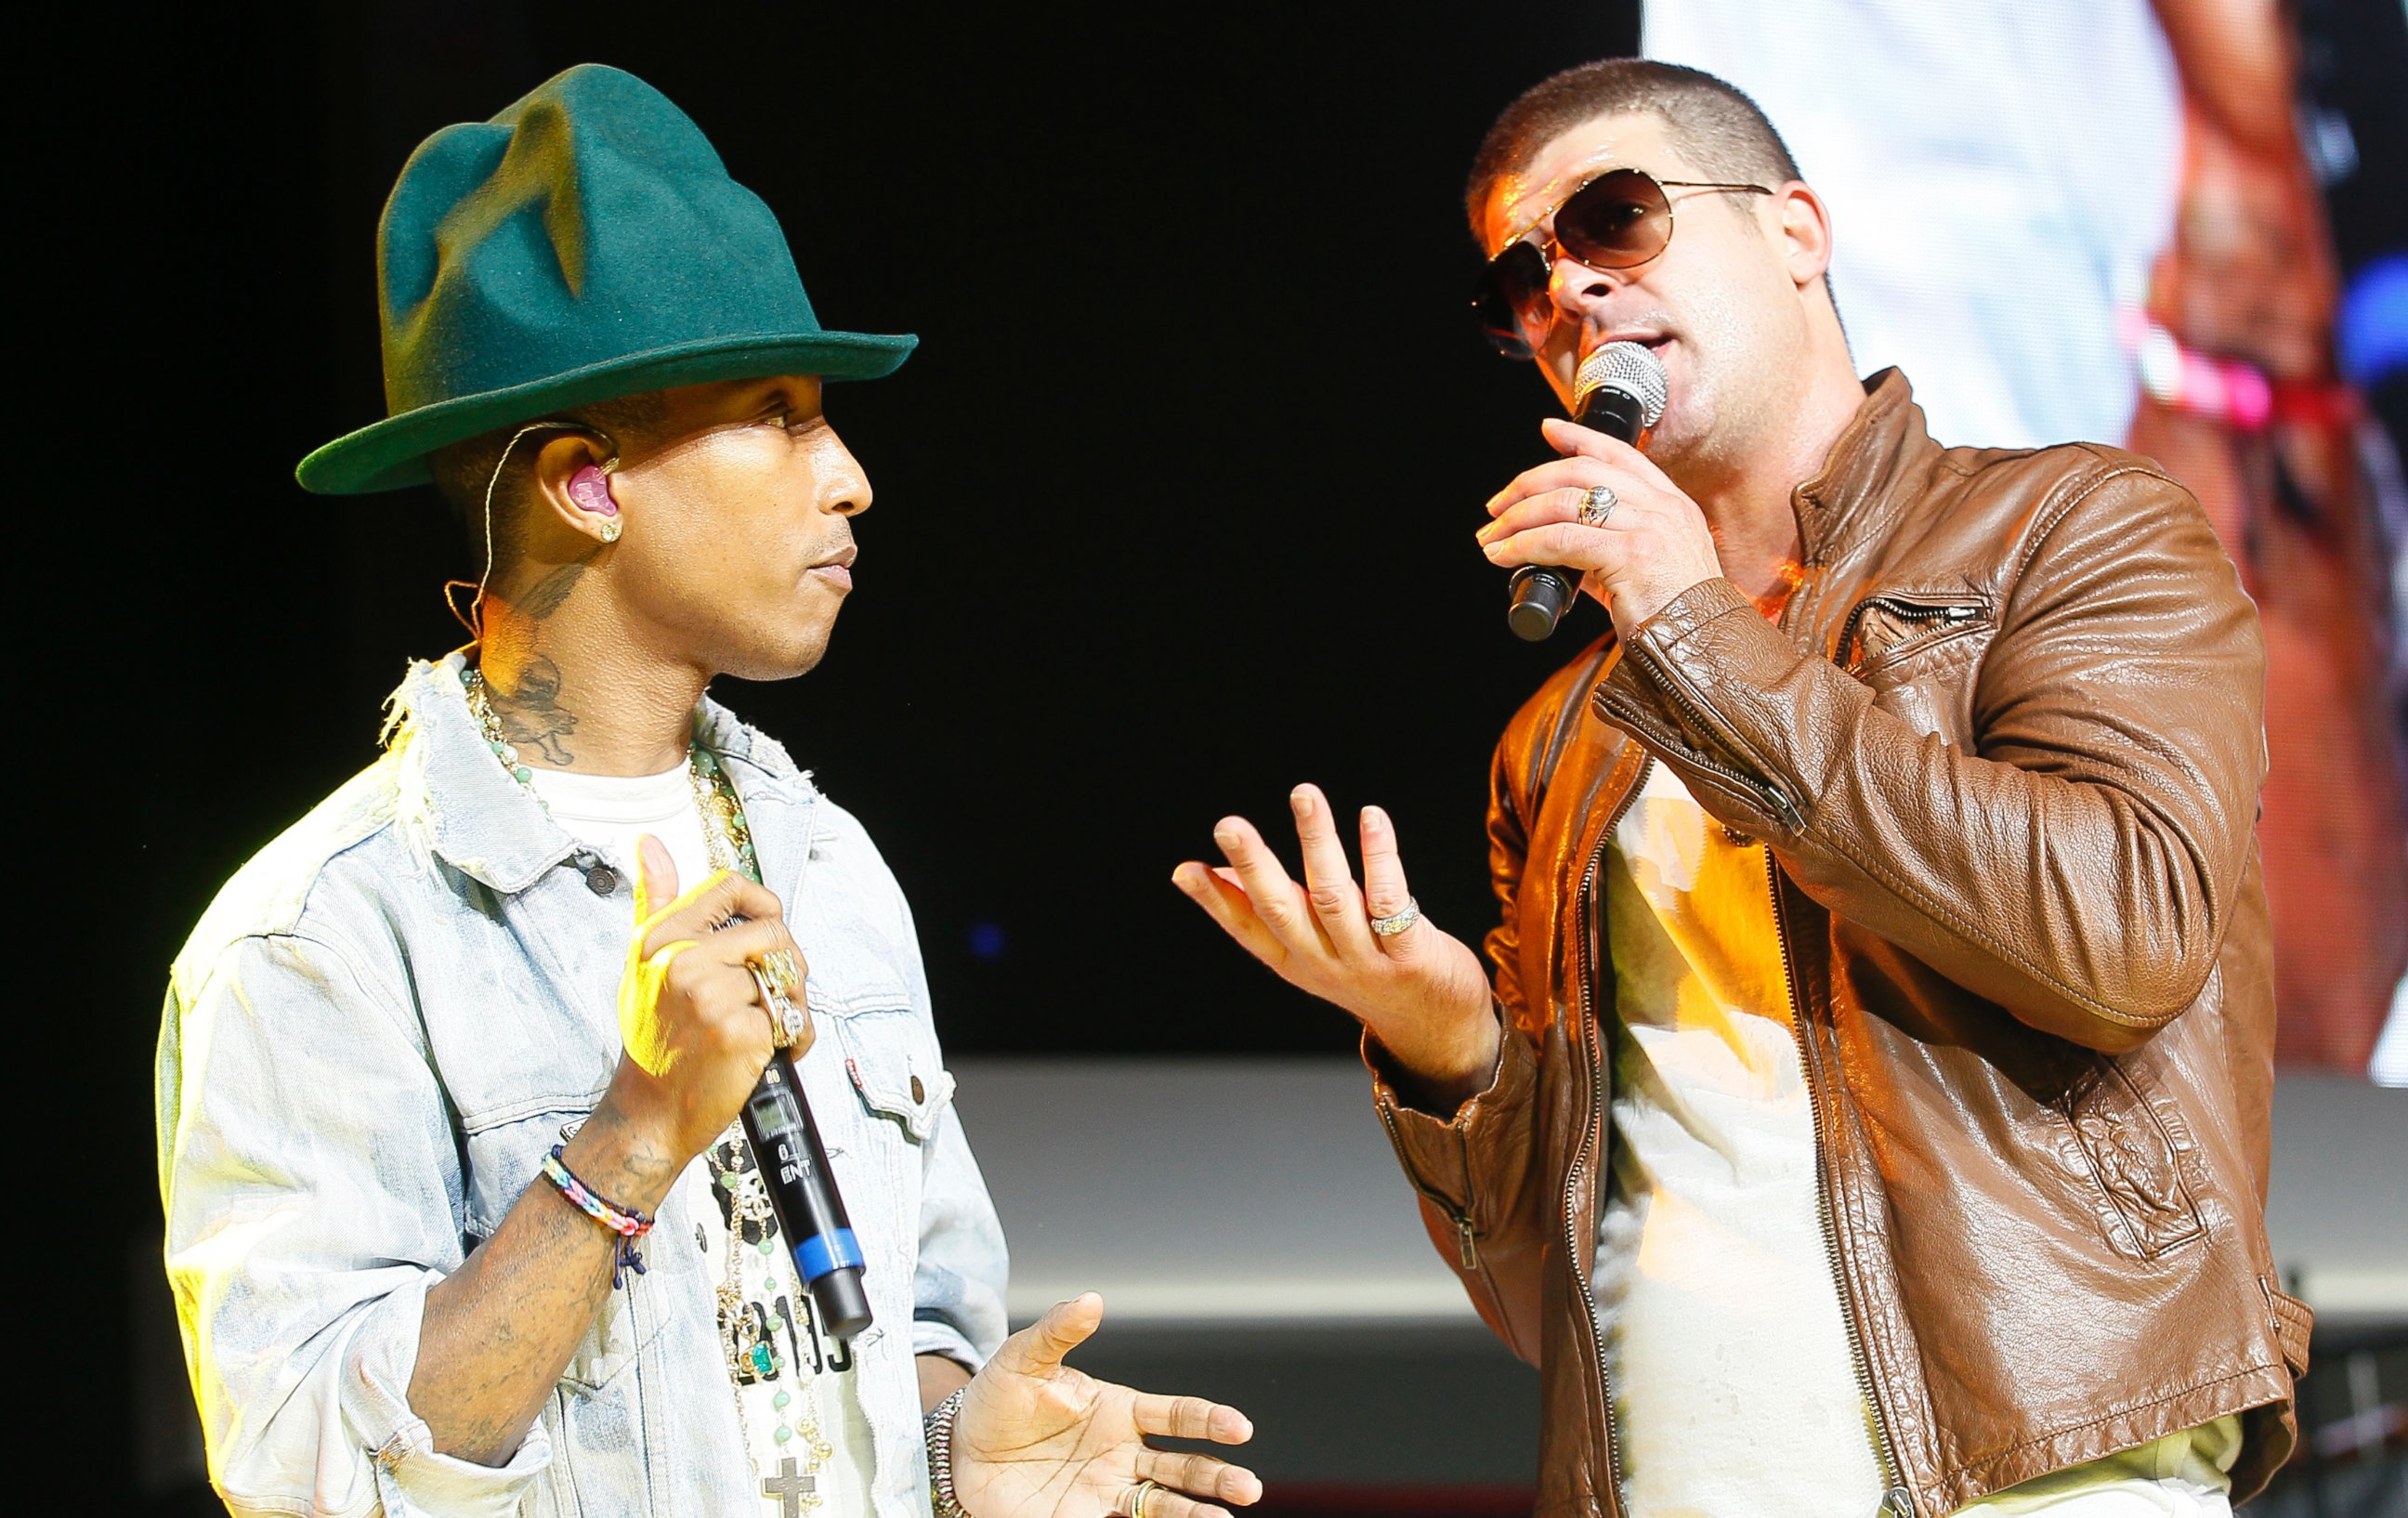 Robin thicke videos at abc news video archive at abcnews photo pharrell williams and robin thicke perform together at the walmart annual shareholders meeting in fayetteville ark june 6 2014 nvjuhfo Image collections